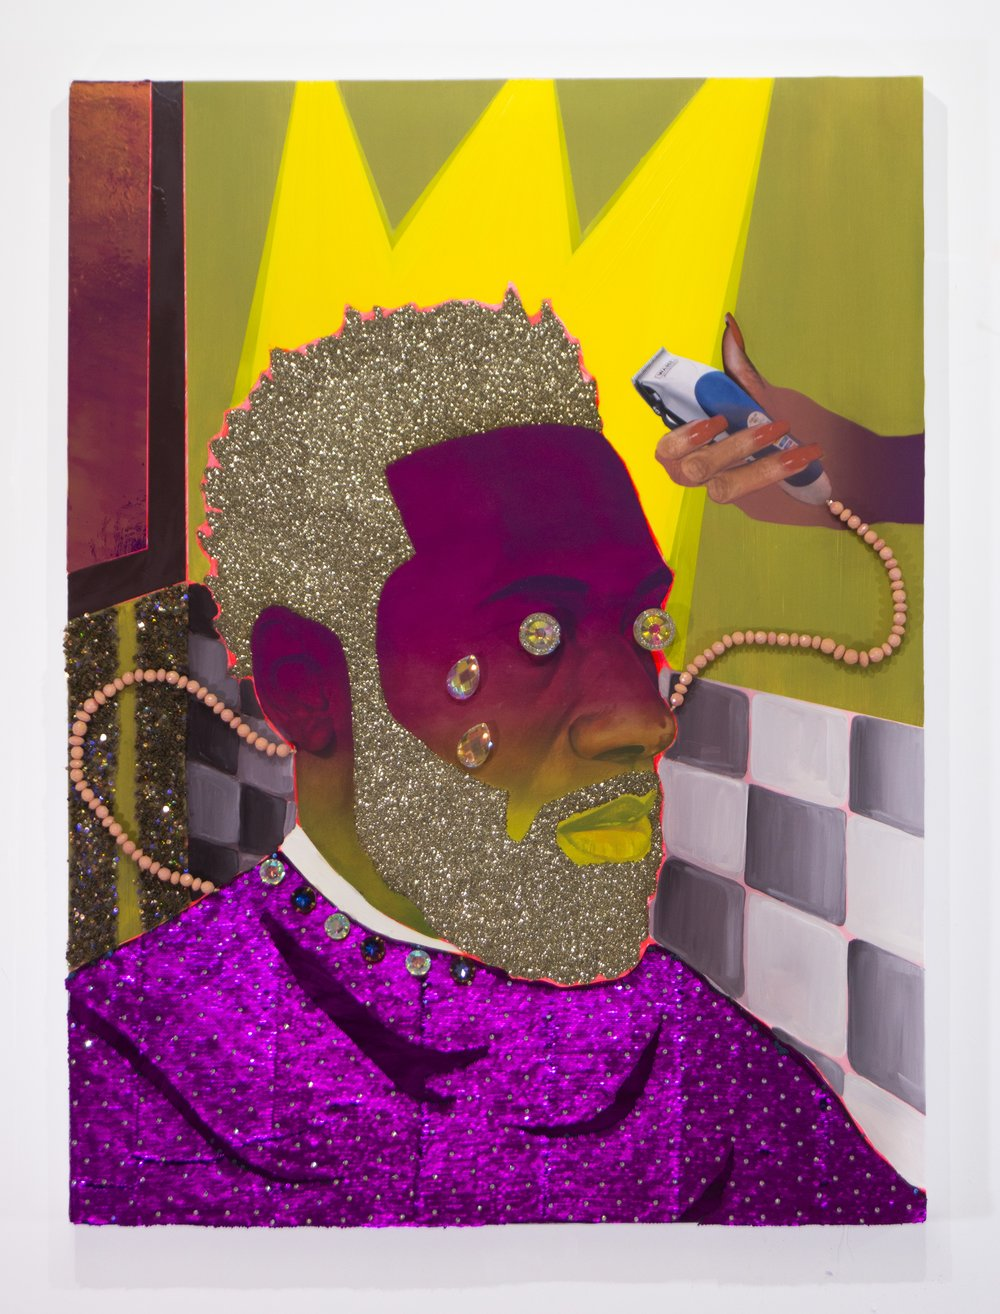 Crowned, 2017, Devan Shimoyama. Courtesy of De Buck Gallery.